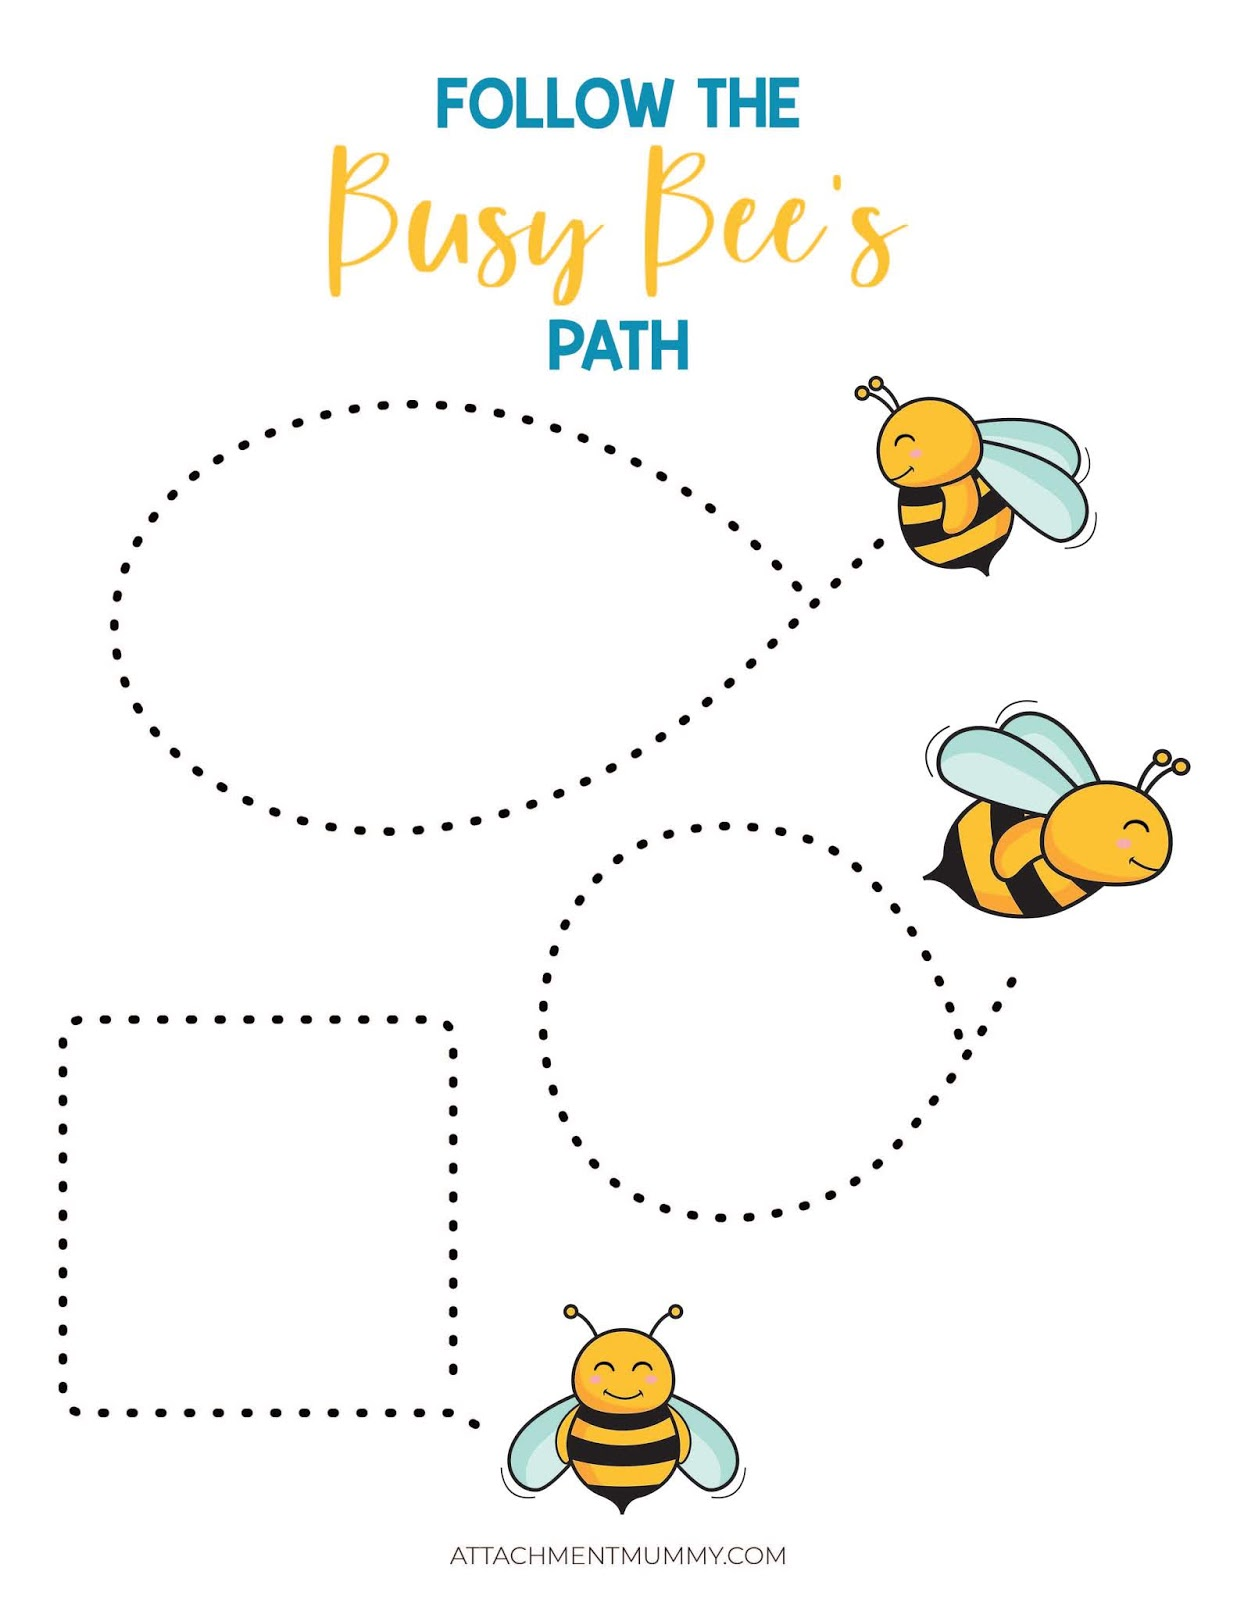 Free Busy Bee Colouring And Activity Pack Printable For Kids